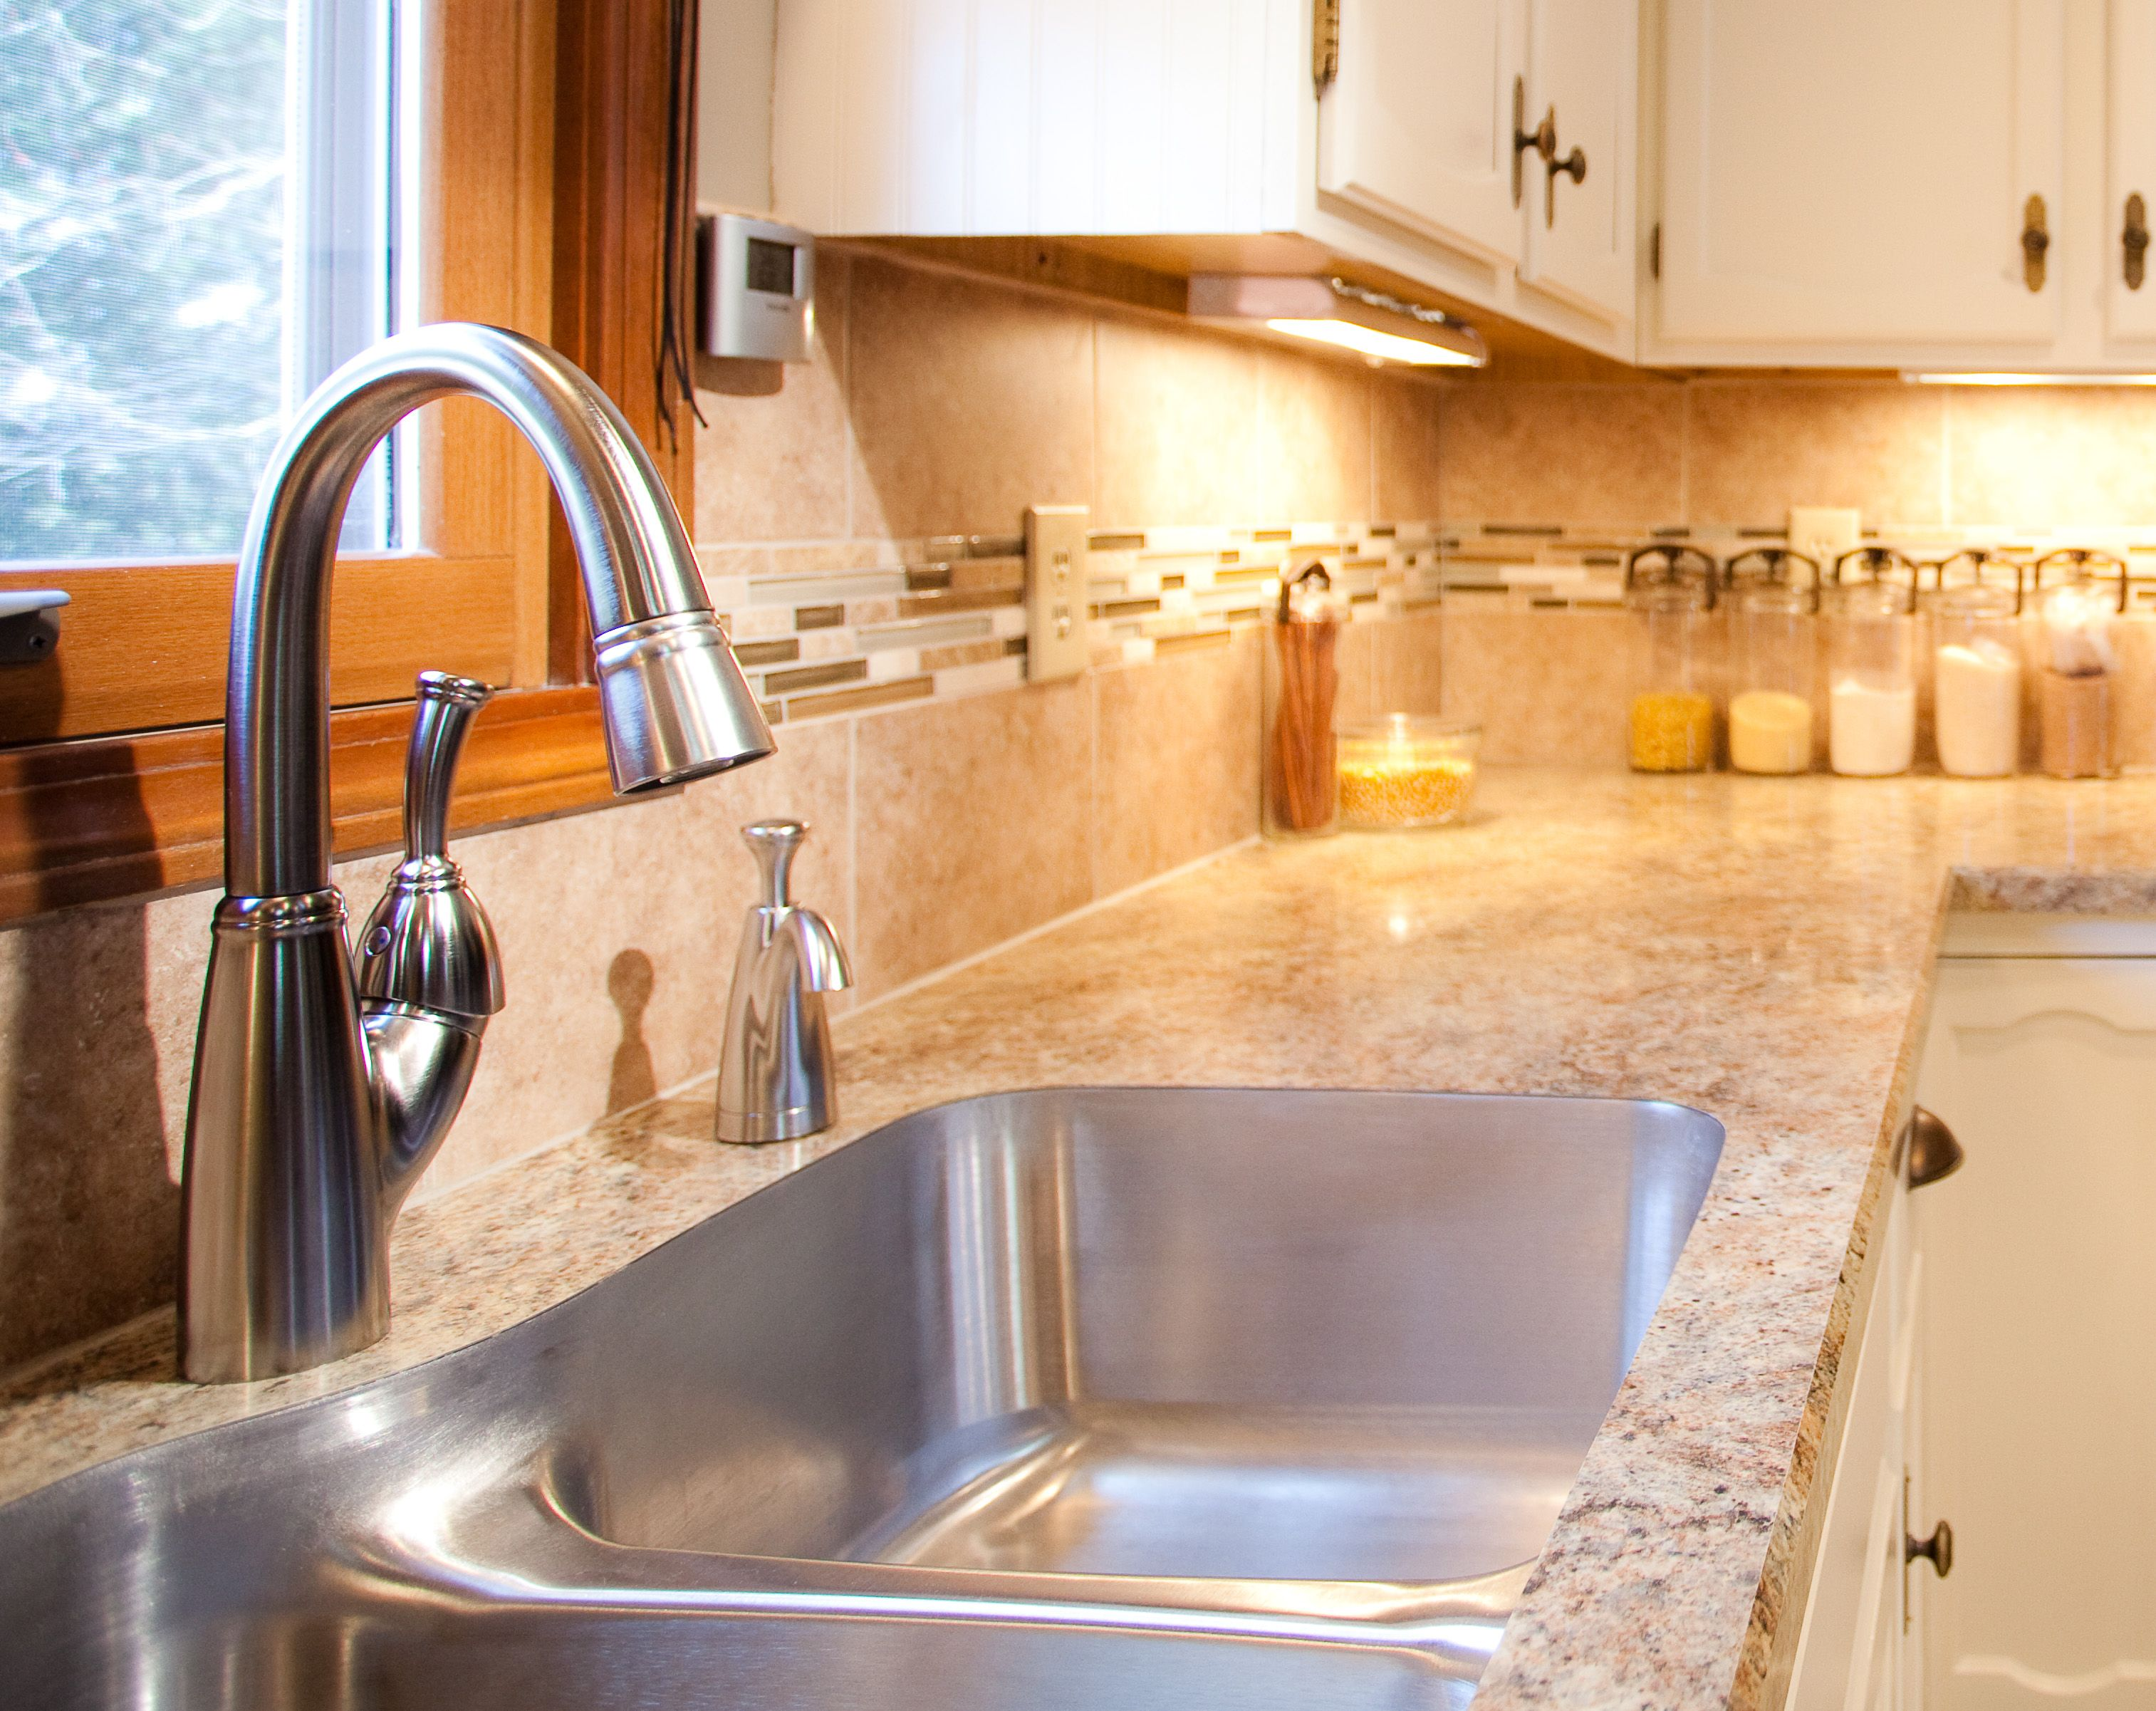 Kitchen Counter Top Designs Kitchen_Granite_Countertops_Mn Select Granite Kitchen Countertops